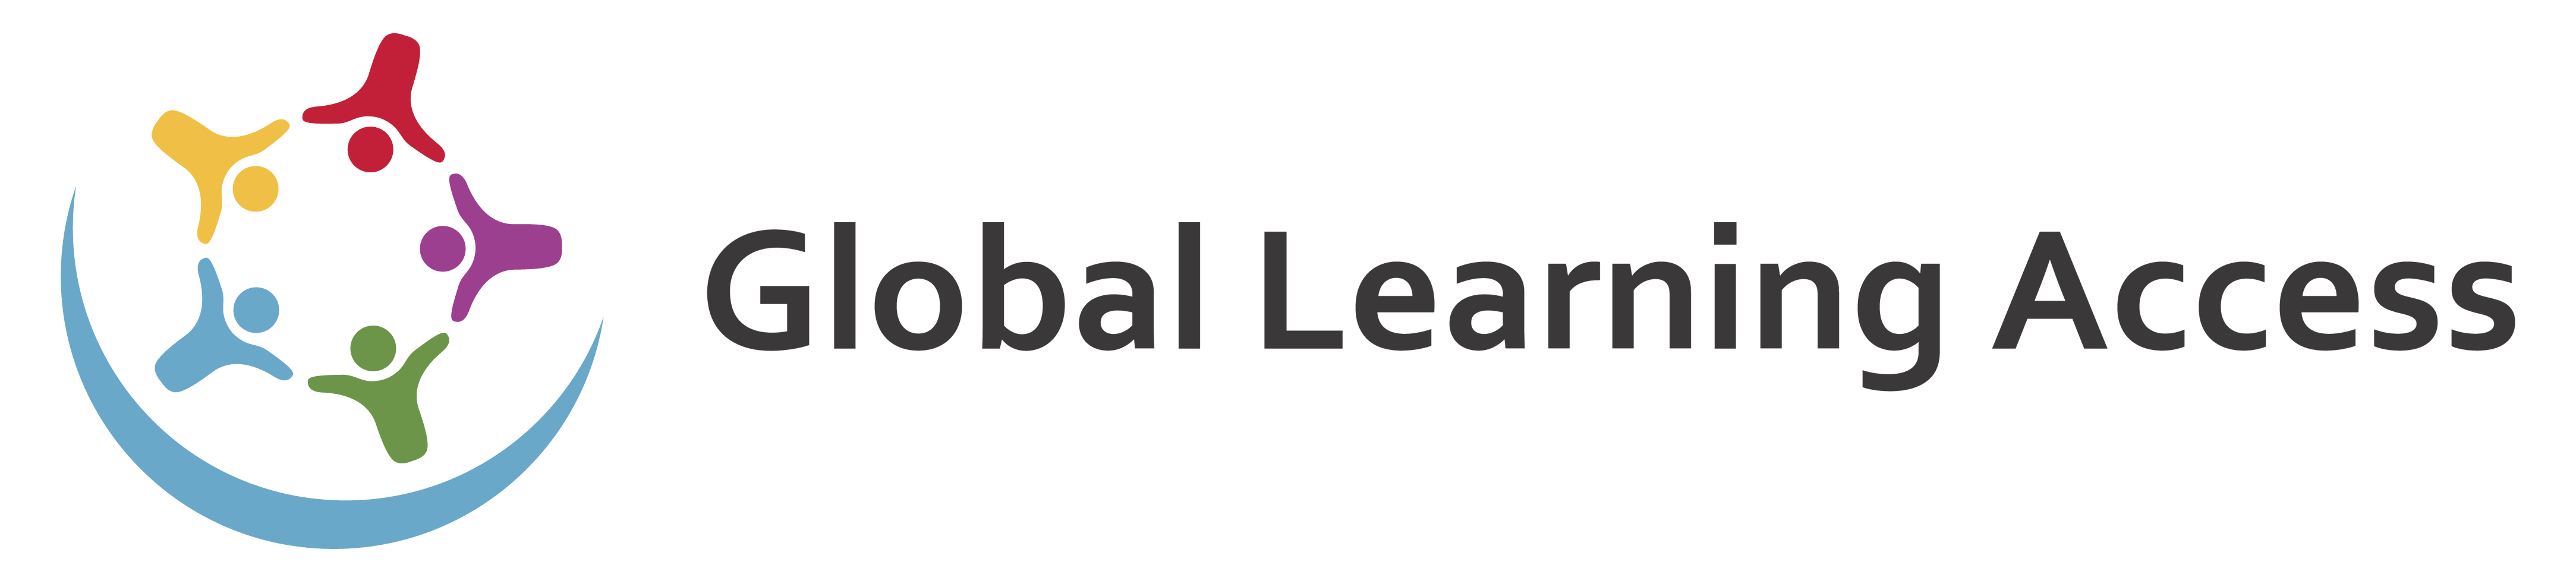 Global Learning Access Logo